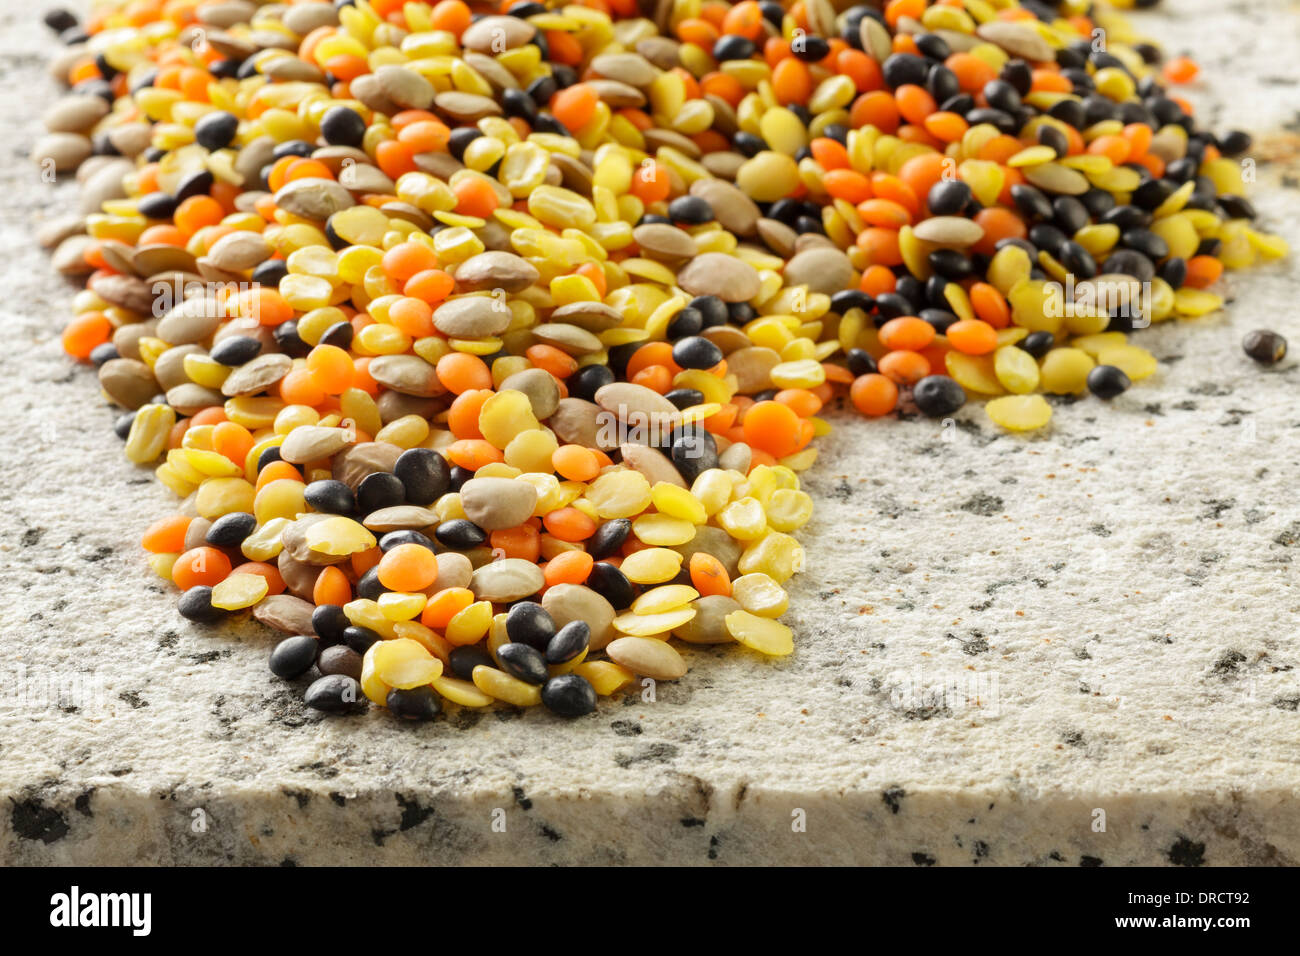 Varied types of Lentils Stock Photo